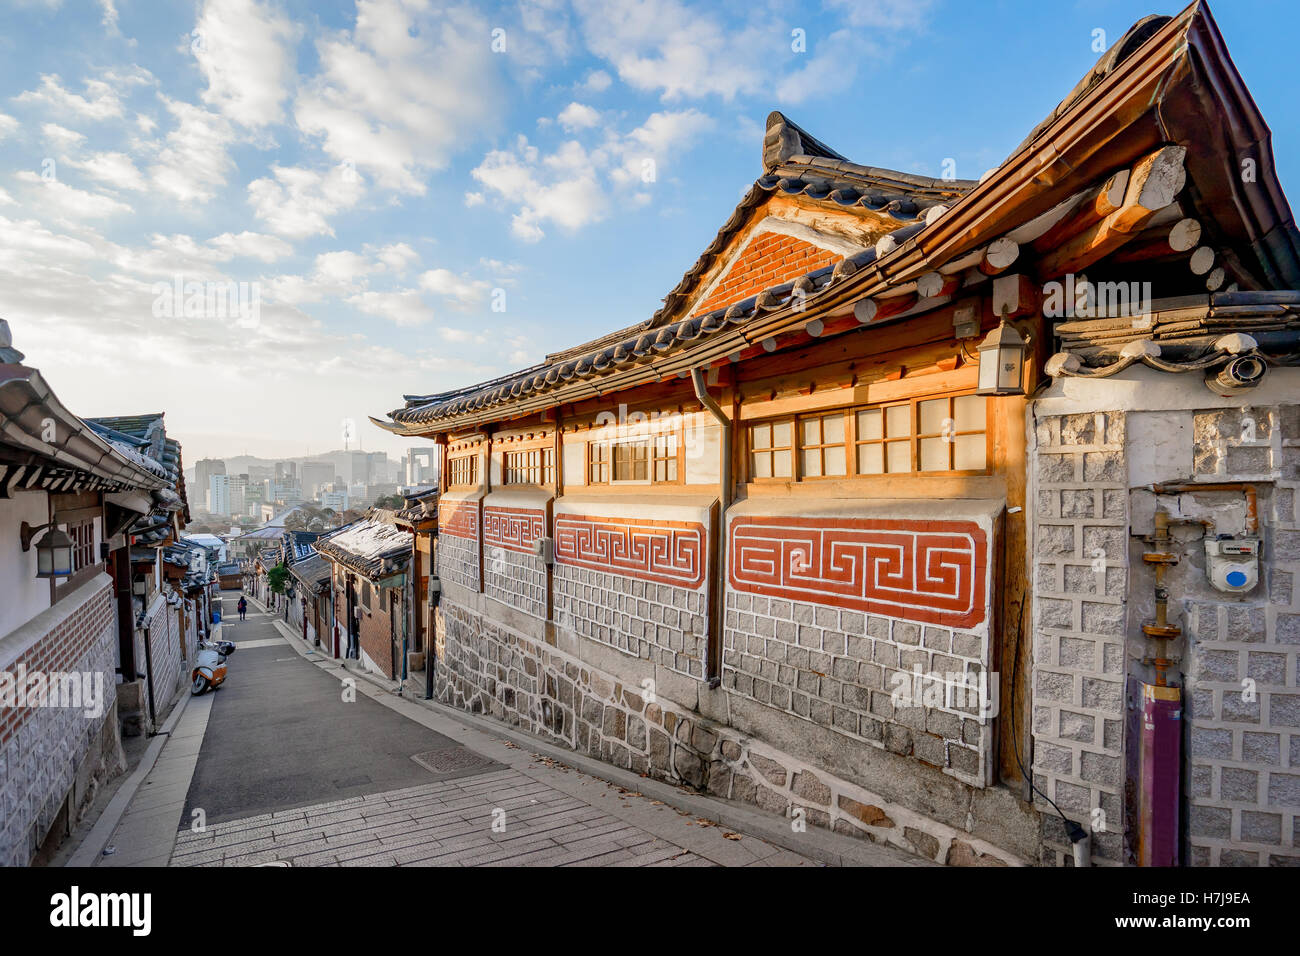 Traditional Korean style architecture at Bukchon Hanok Village in Seoul, South Korea. - Stock Image